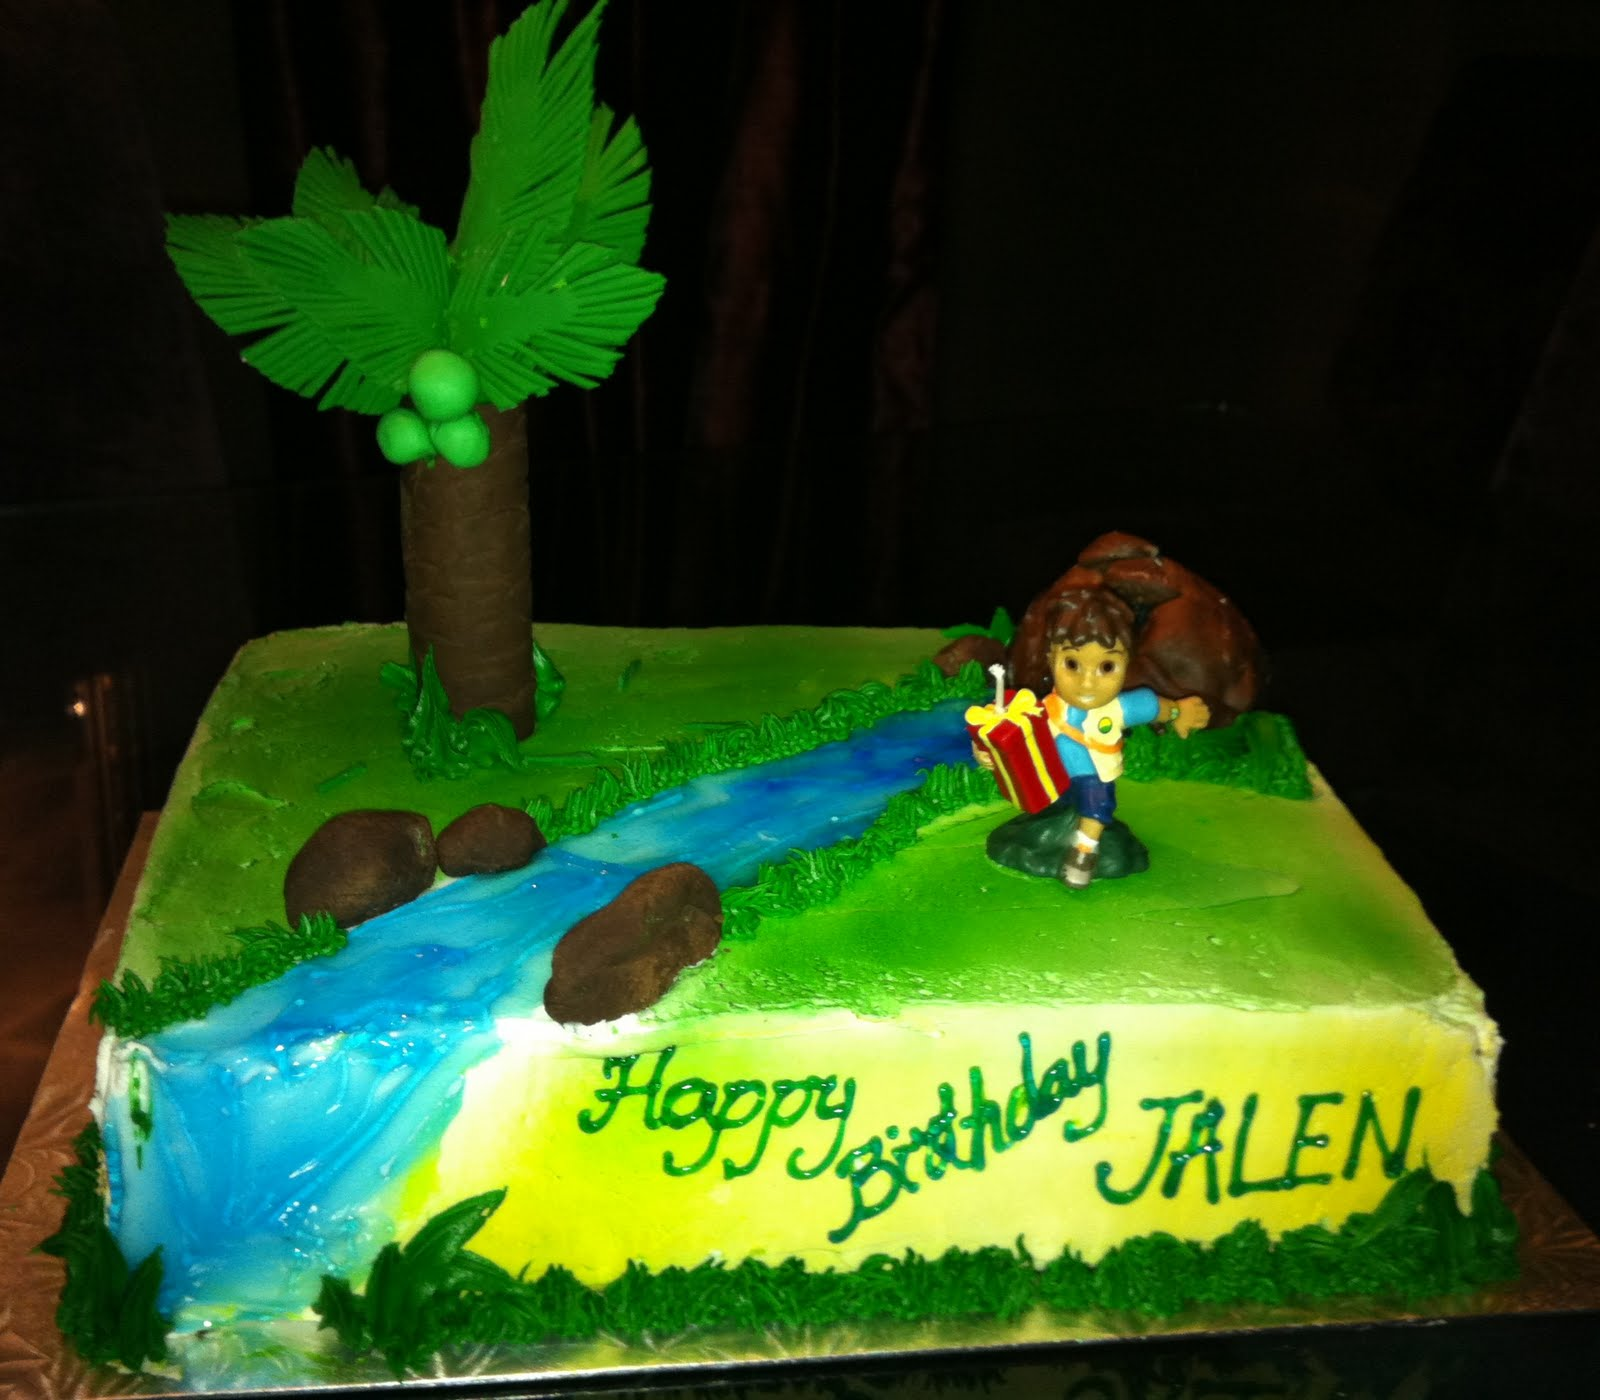 Jocelyns Wedding Cakes And More Go Diego Go Cake - Go diego go birthday cake